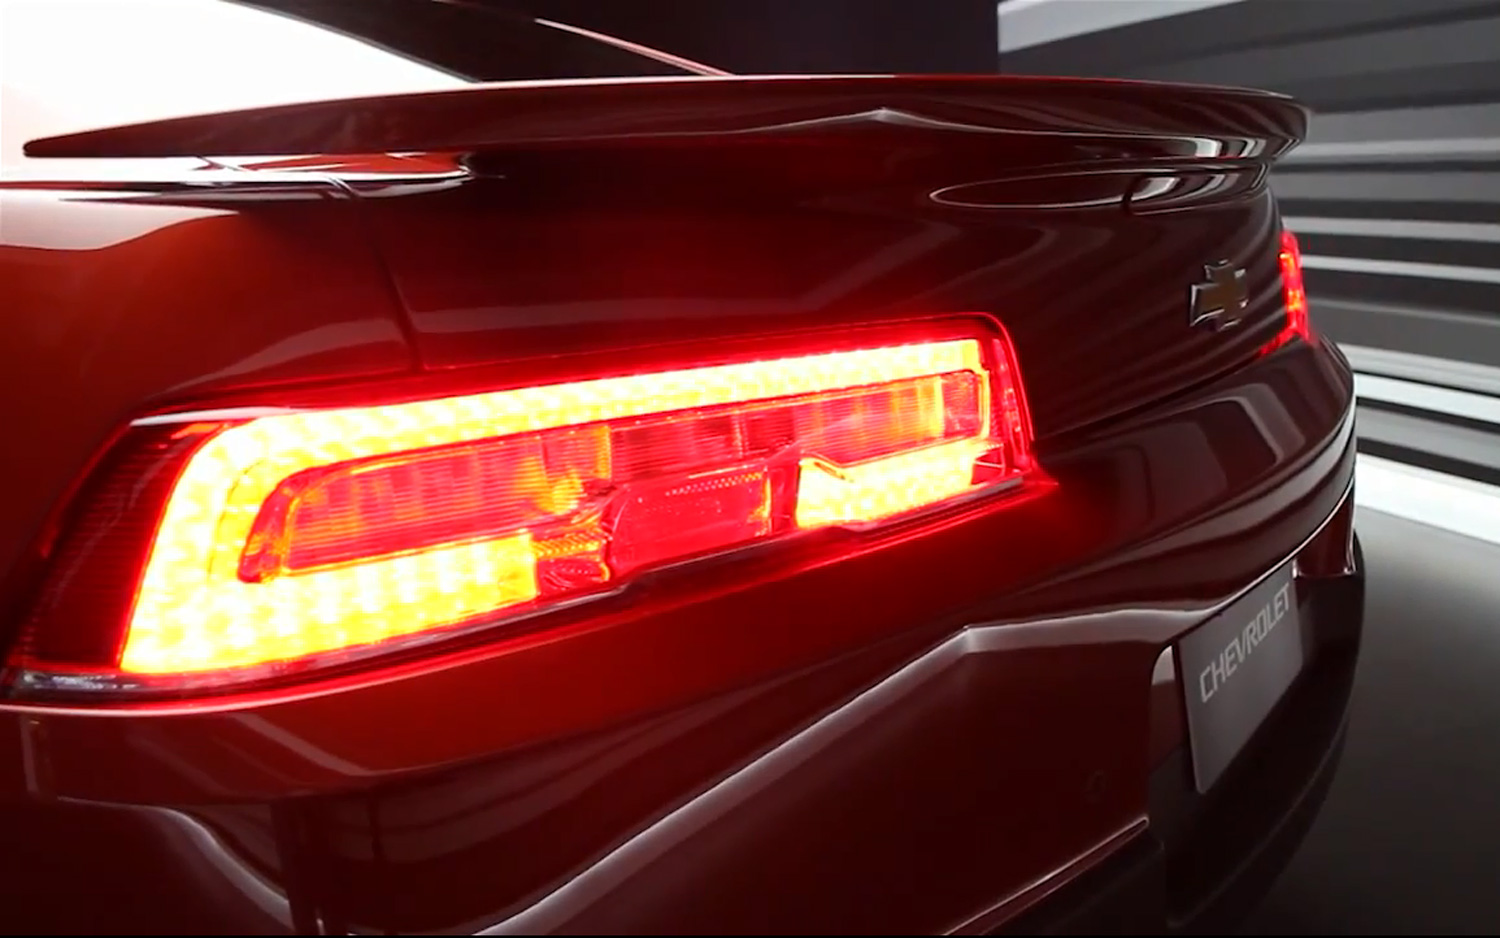 2014 camaro ss tail lights. Cars Review. Best American Auto & Cars Review